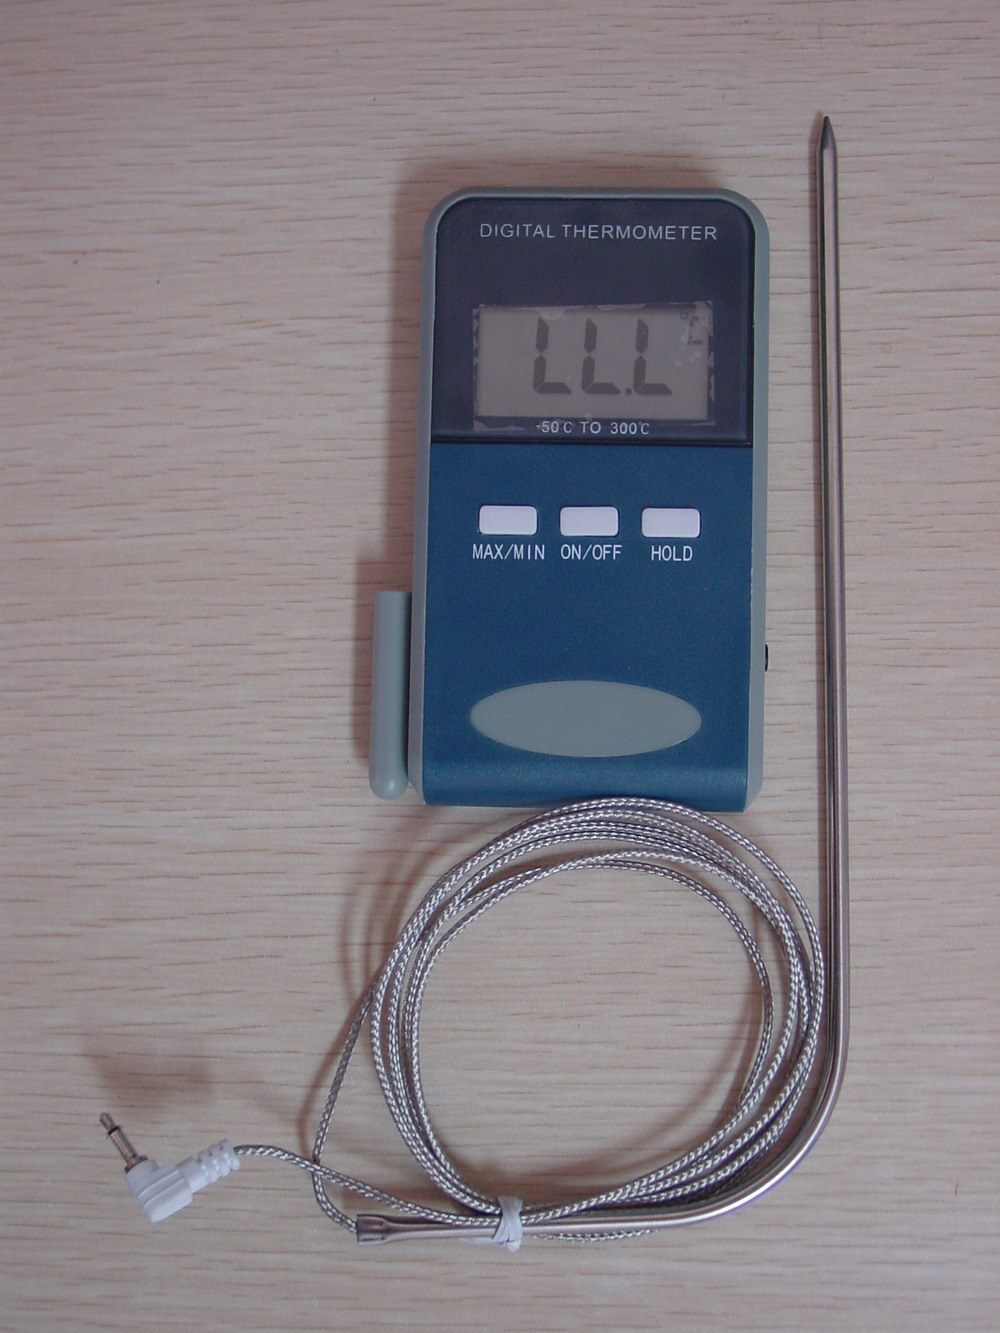 Barbecue Food Temperature Measurement Tbt-13h